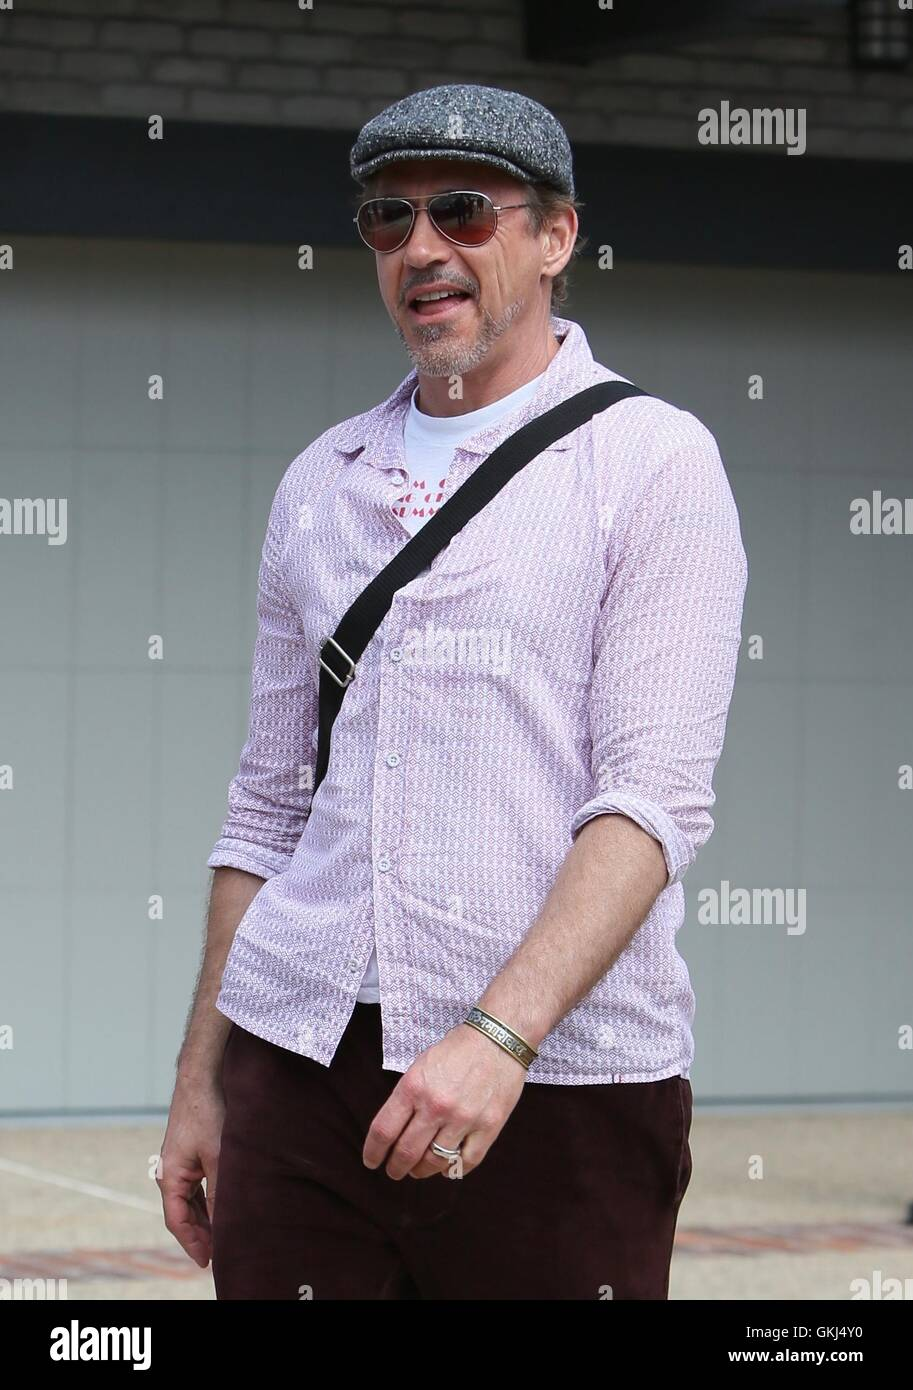 7a56957f54483 Robert Downey Jr arrives at Joel Silver s Memorial Day party Featuring  Robert  Downey Jr. Where  Los Angeles